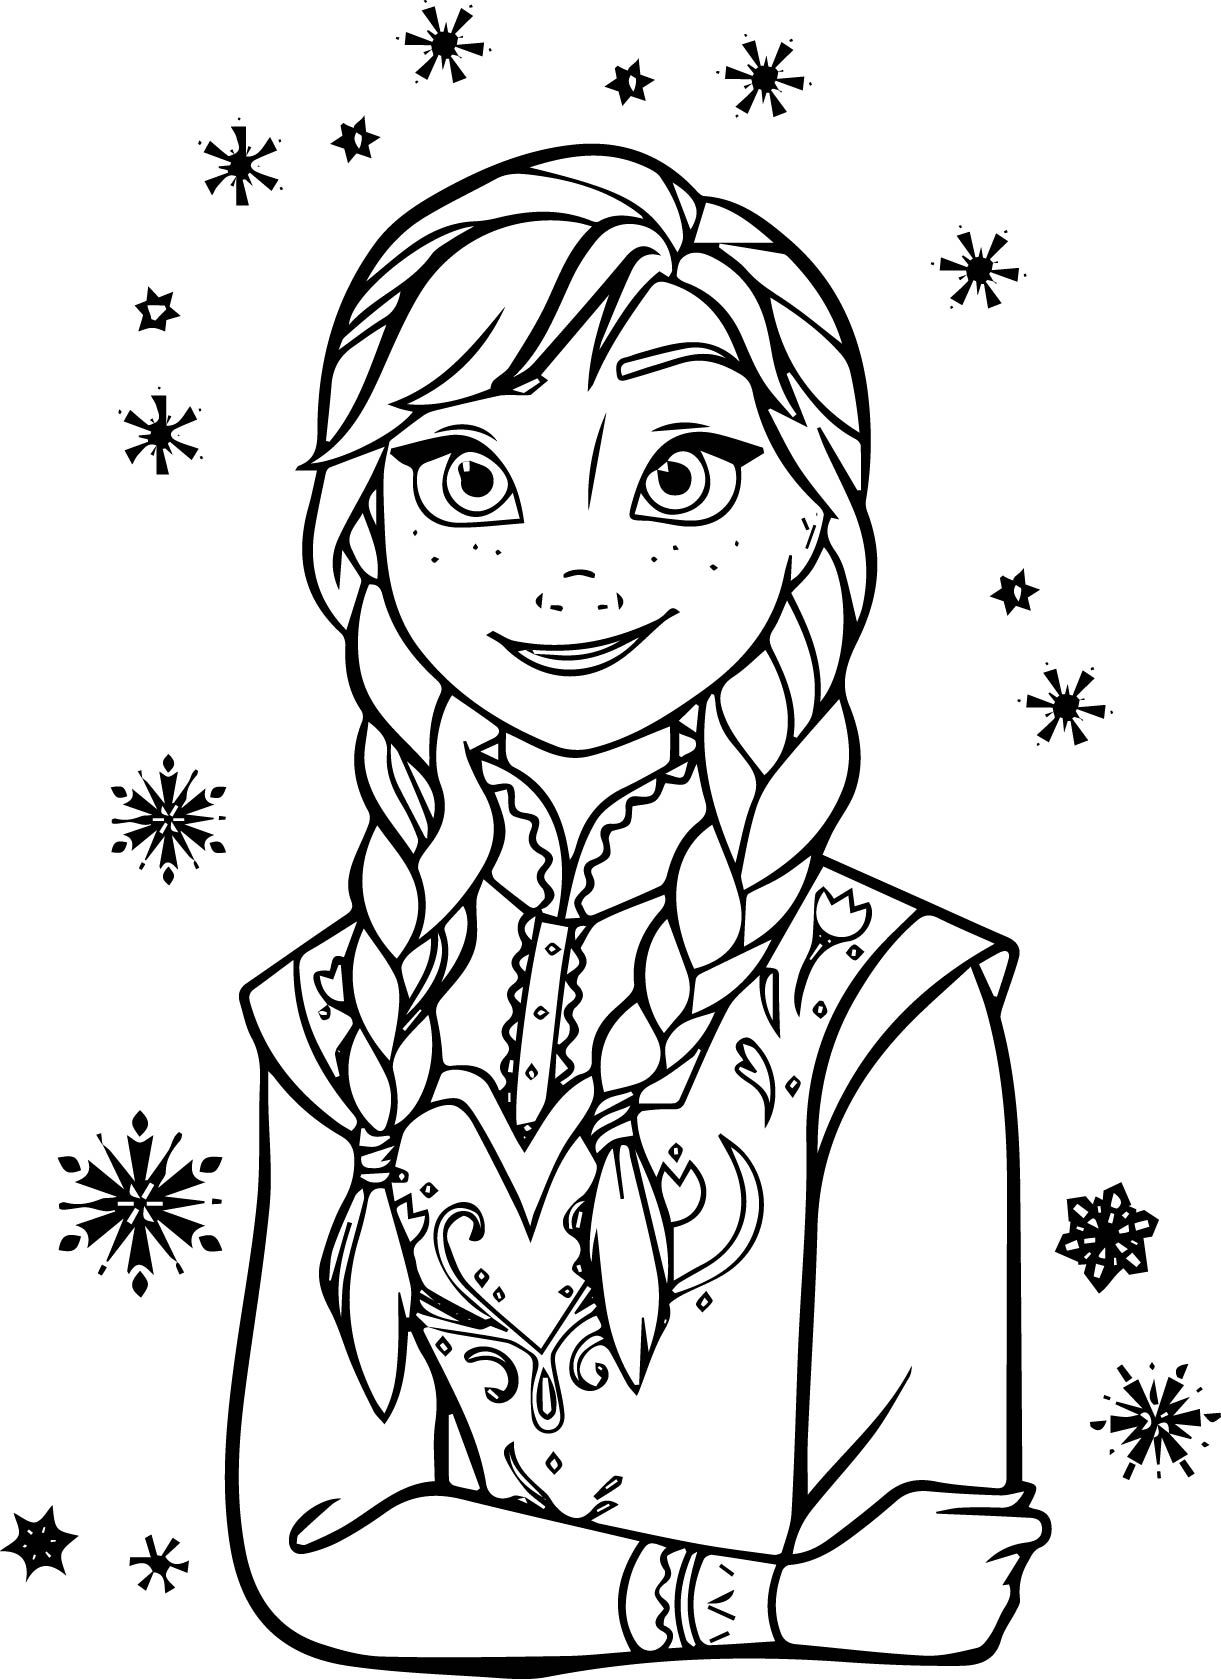 Pin on coloring_pages